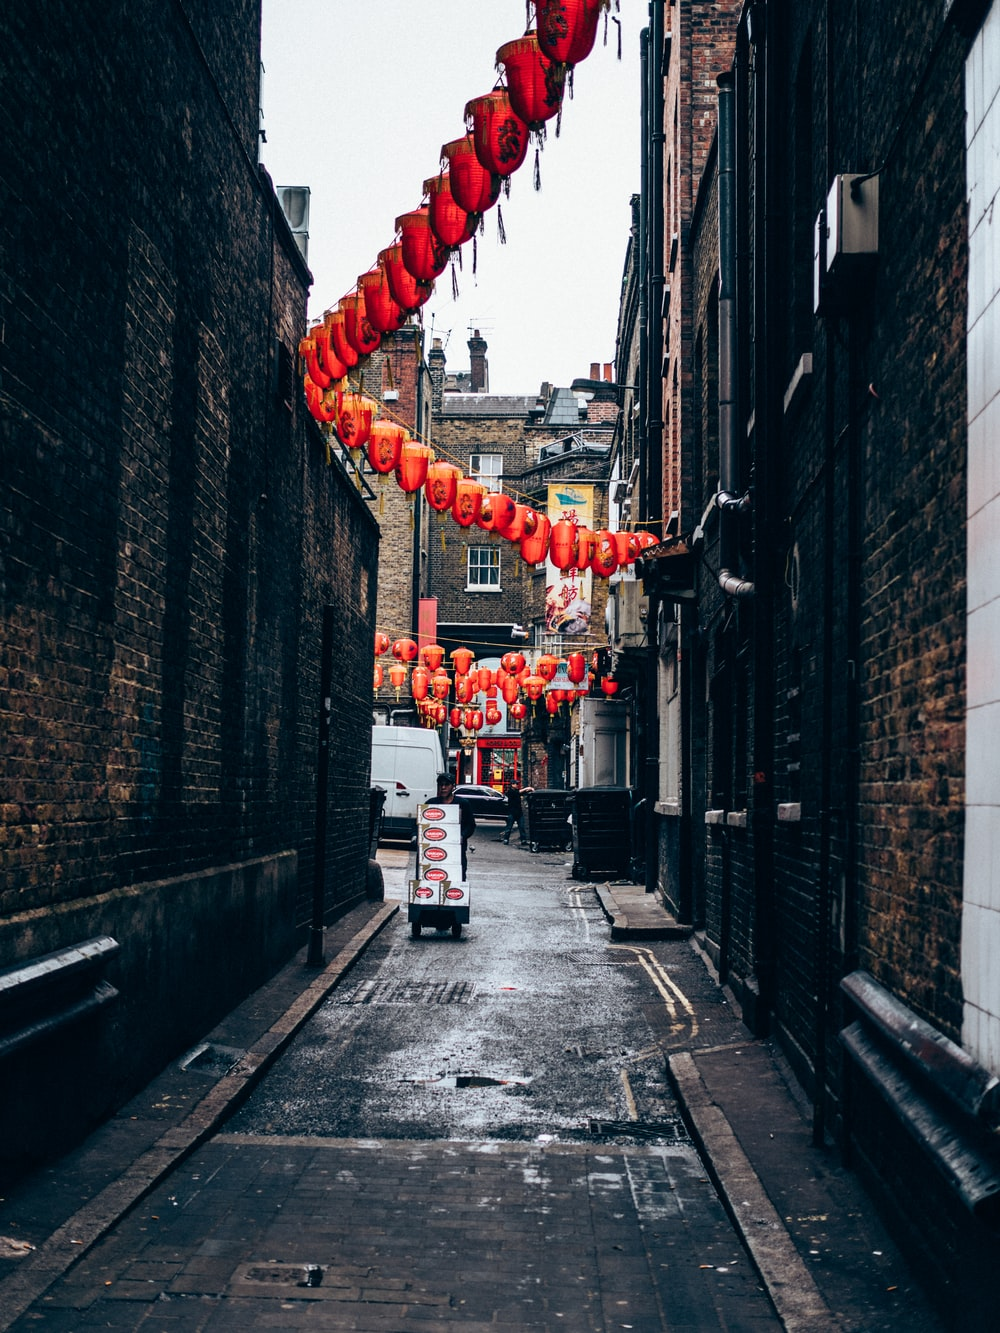 red Chinese lantern hanged on gray concrete buildings during daytime